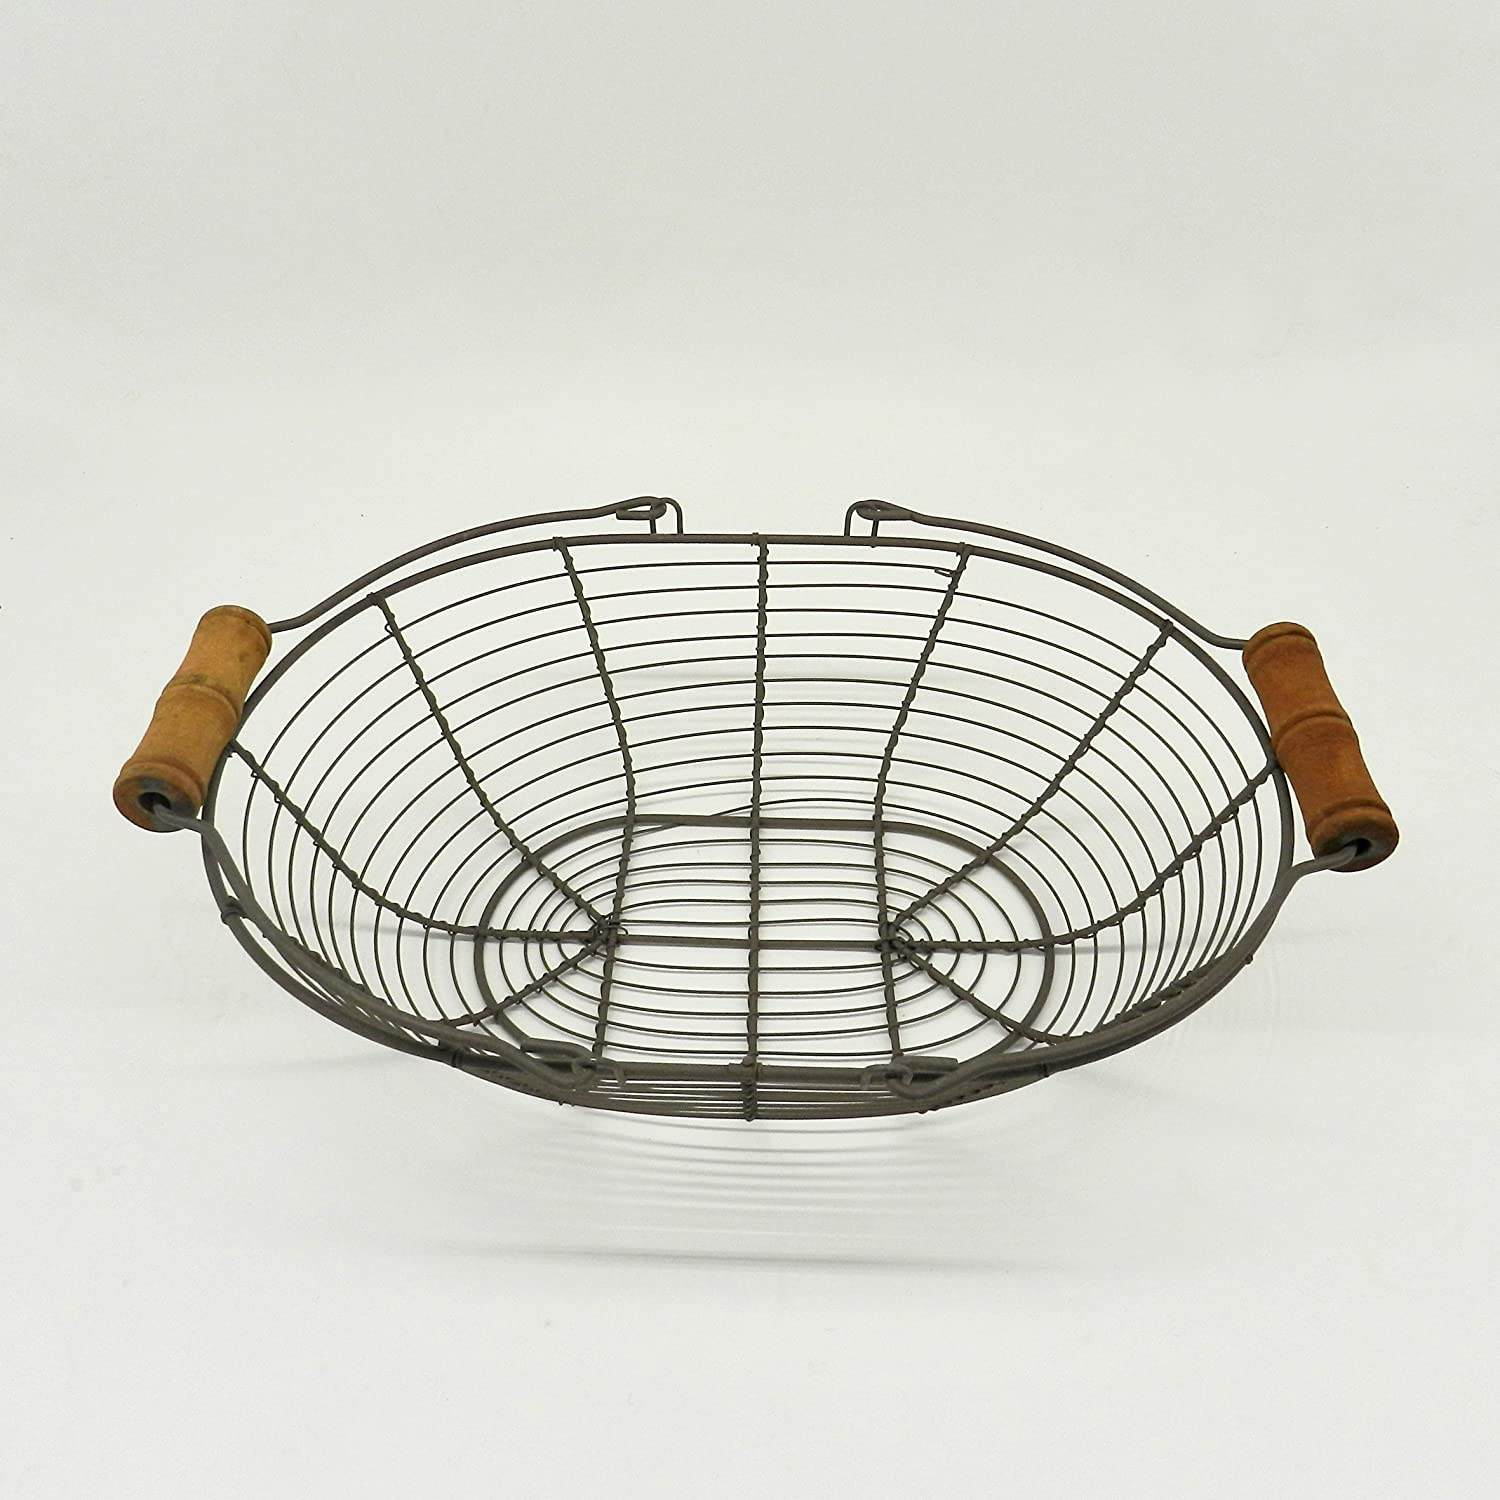 Amazon.com - CVHOMEDECO. Oval Metal Wire Egg Basket Wire Basket with ...